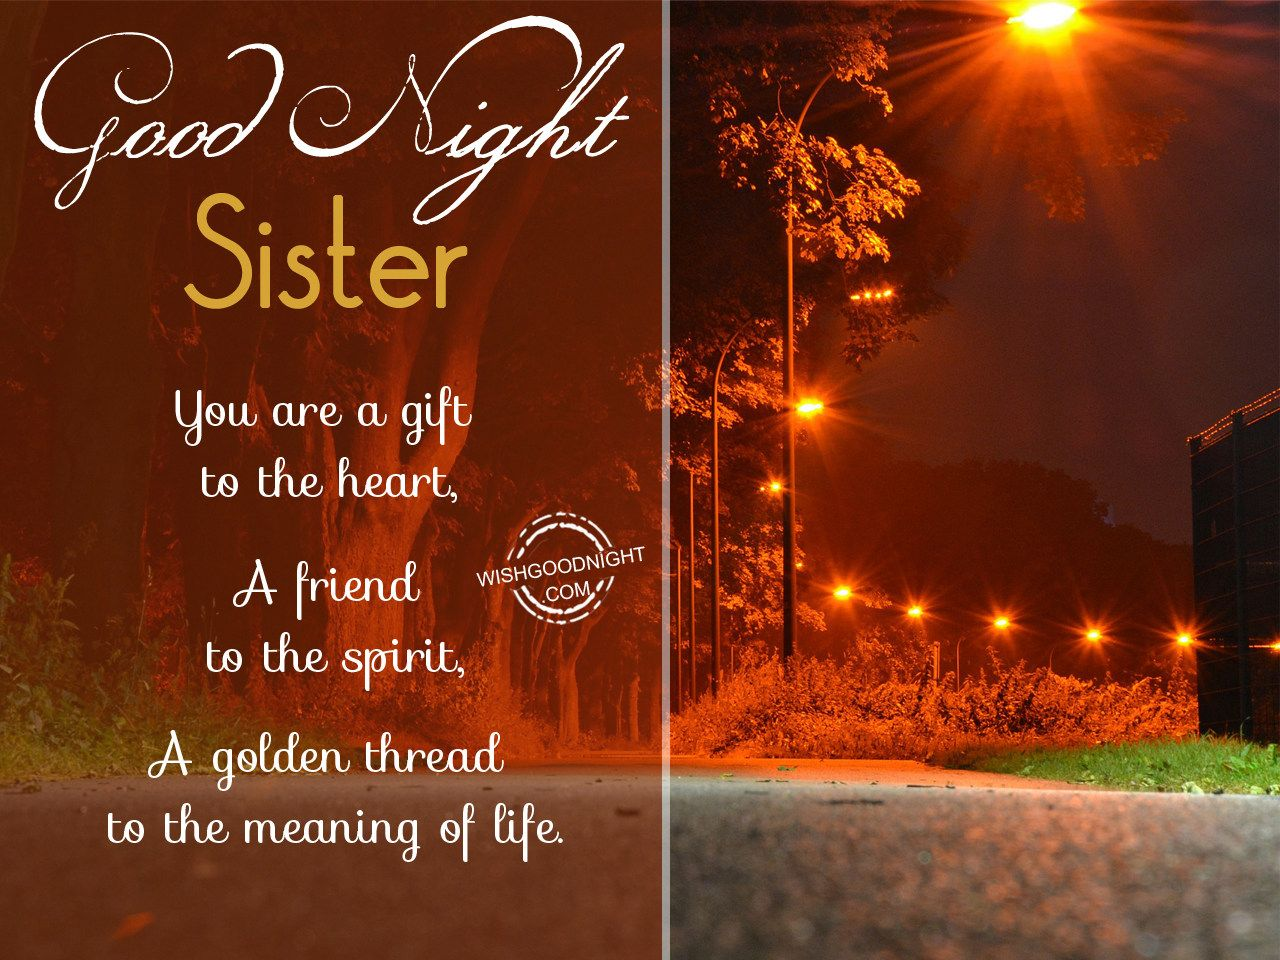 Good Night Wishes To Sister Good Night Wishes For Sister Good